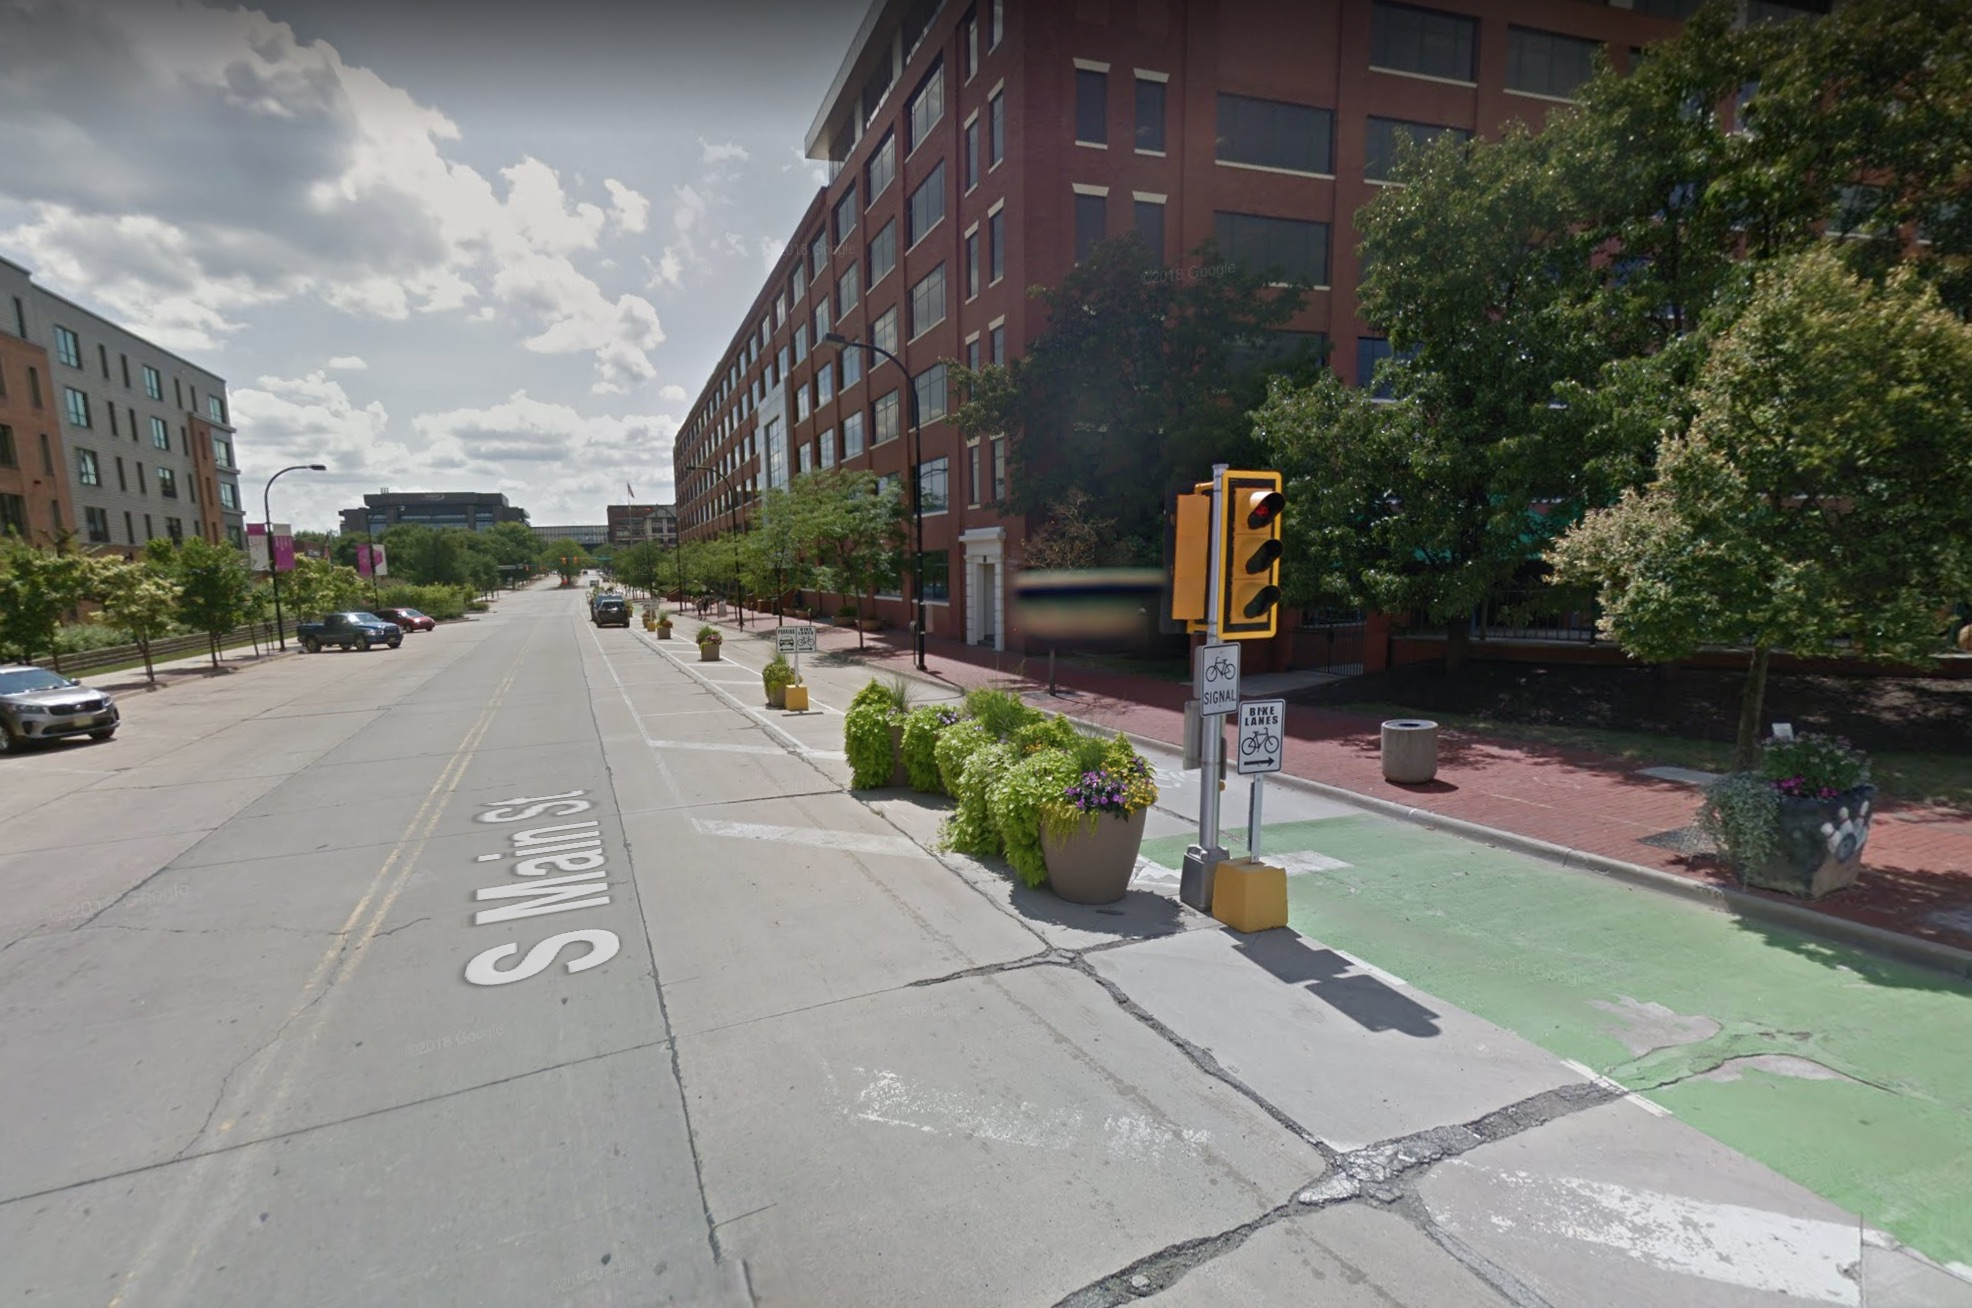 A protected bike lane on South Main Street has become an accepted feature of the streetscape. (Image: Google)